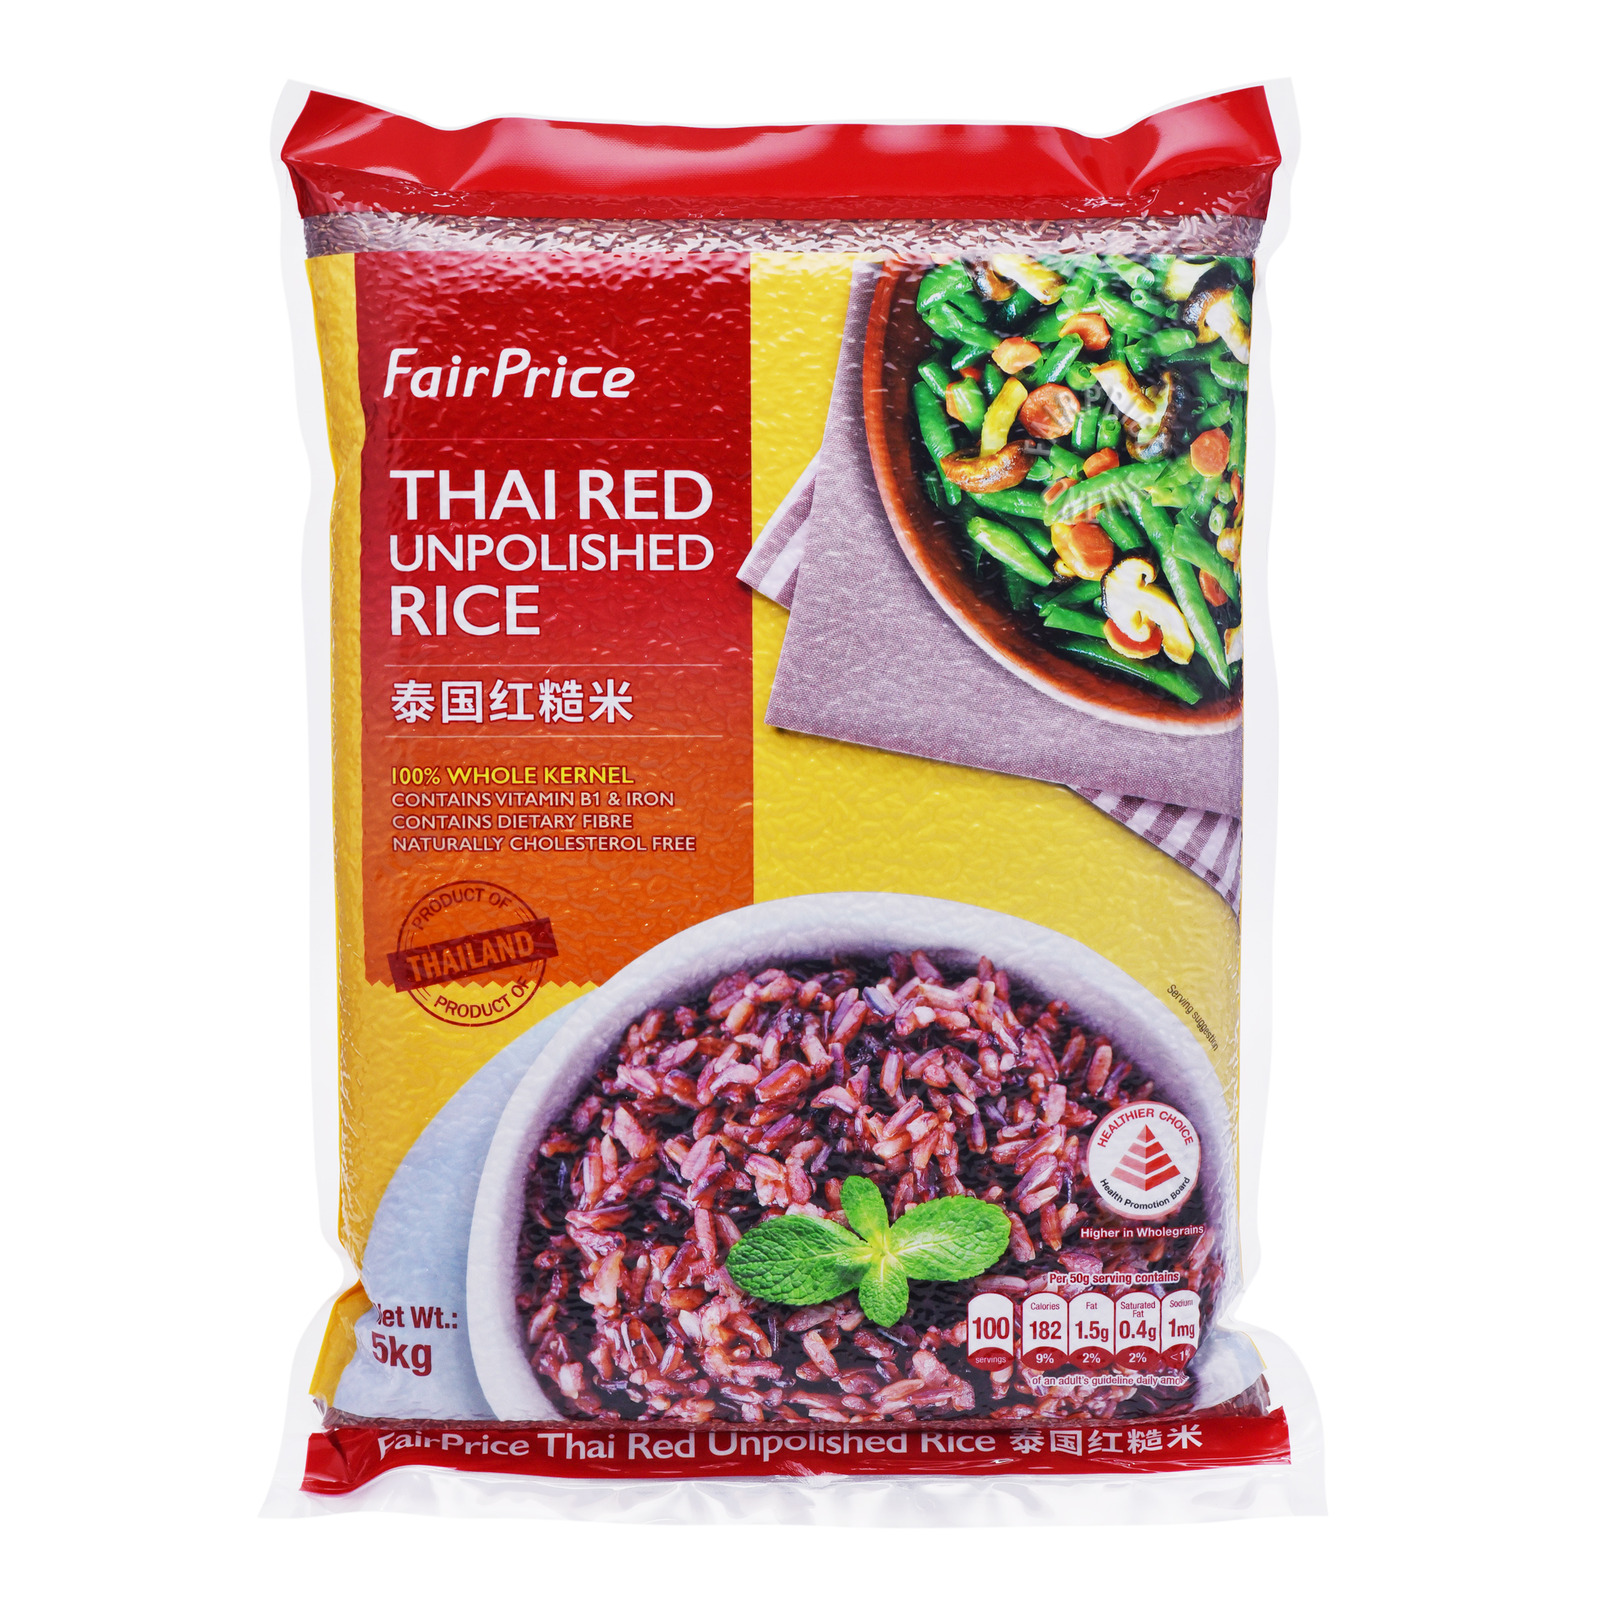 FairPrice Thai Red Rice - Unpolished